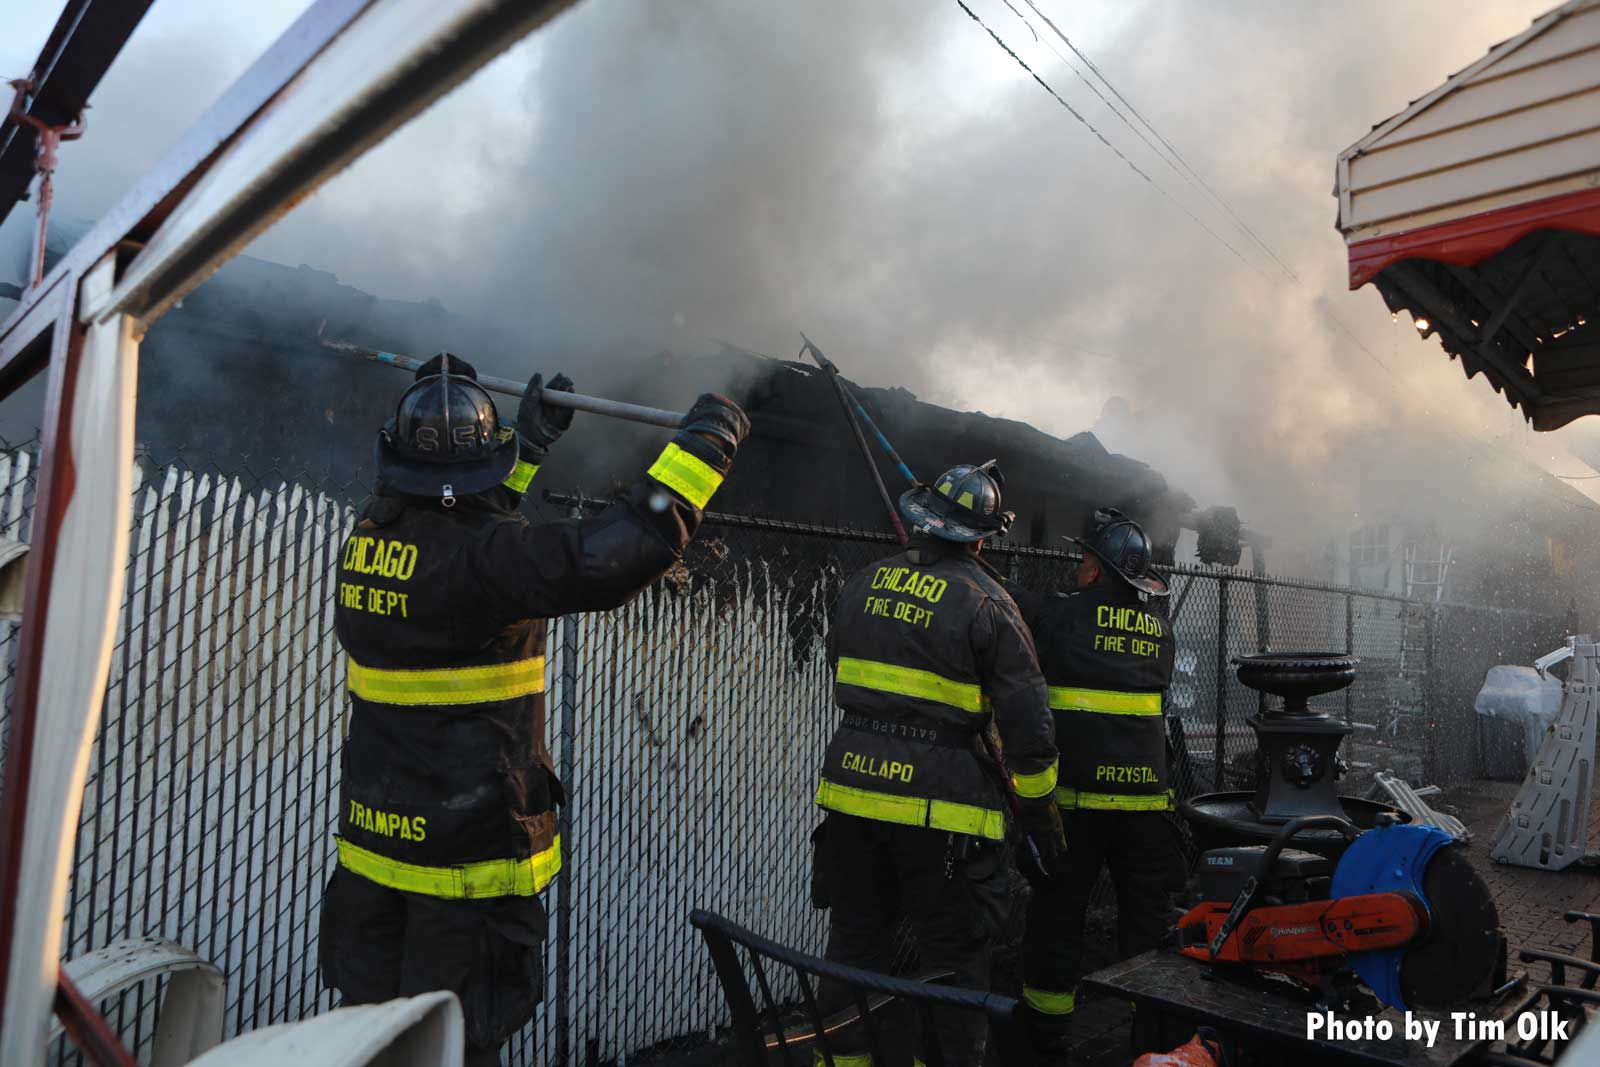 Multiple firefighters using hand tools at fire scene